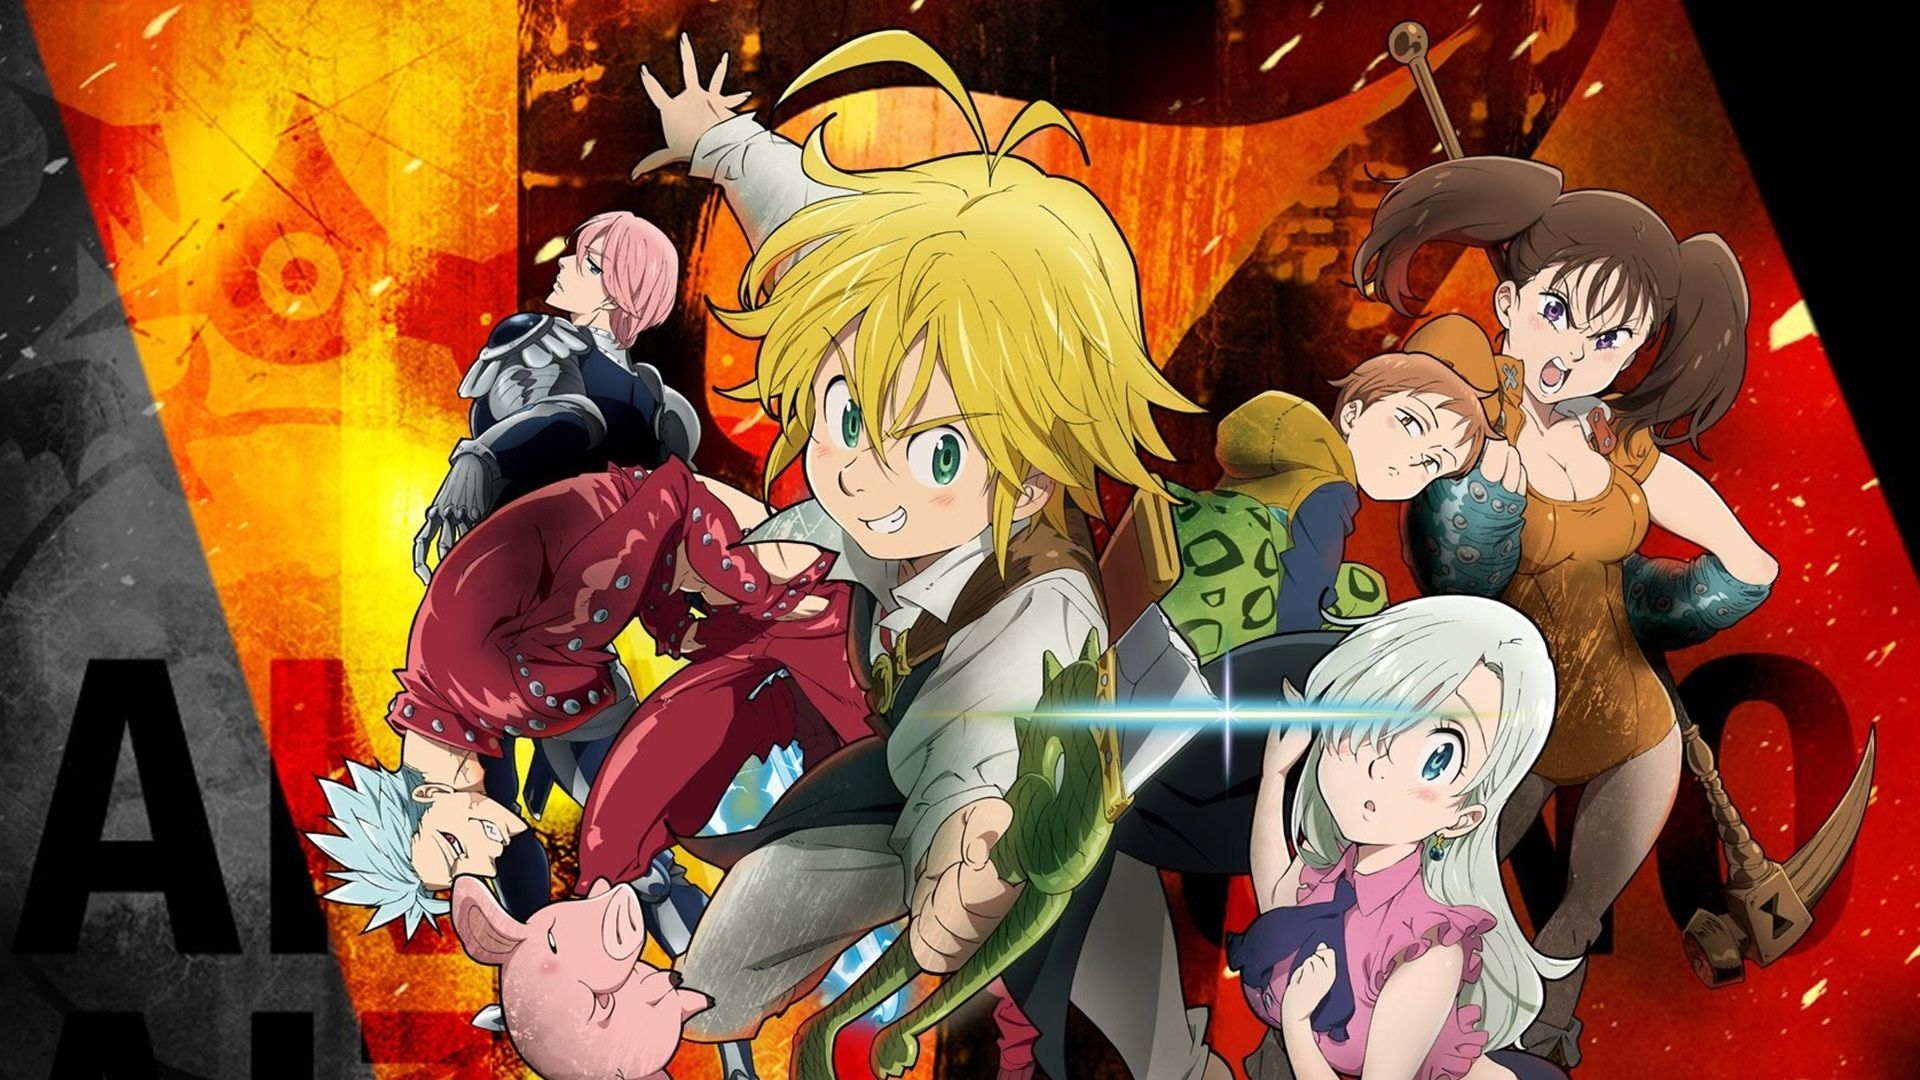 Seven Deadly Sins Minimalist Anime Wallpapers - Wallpaper Cave